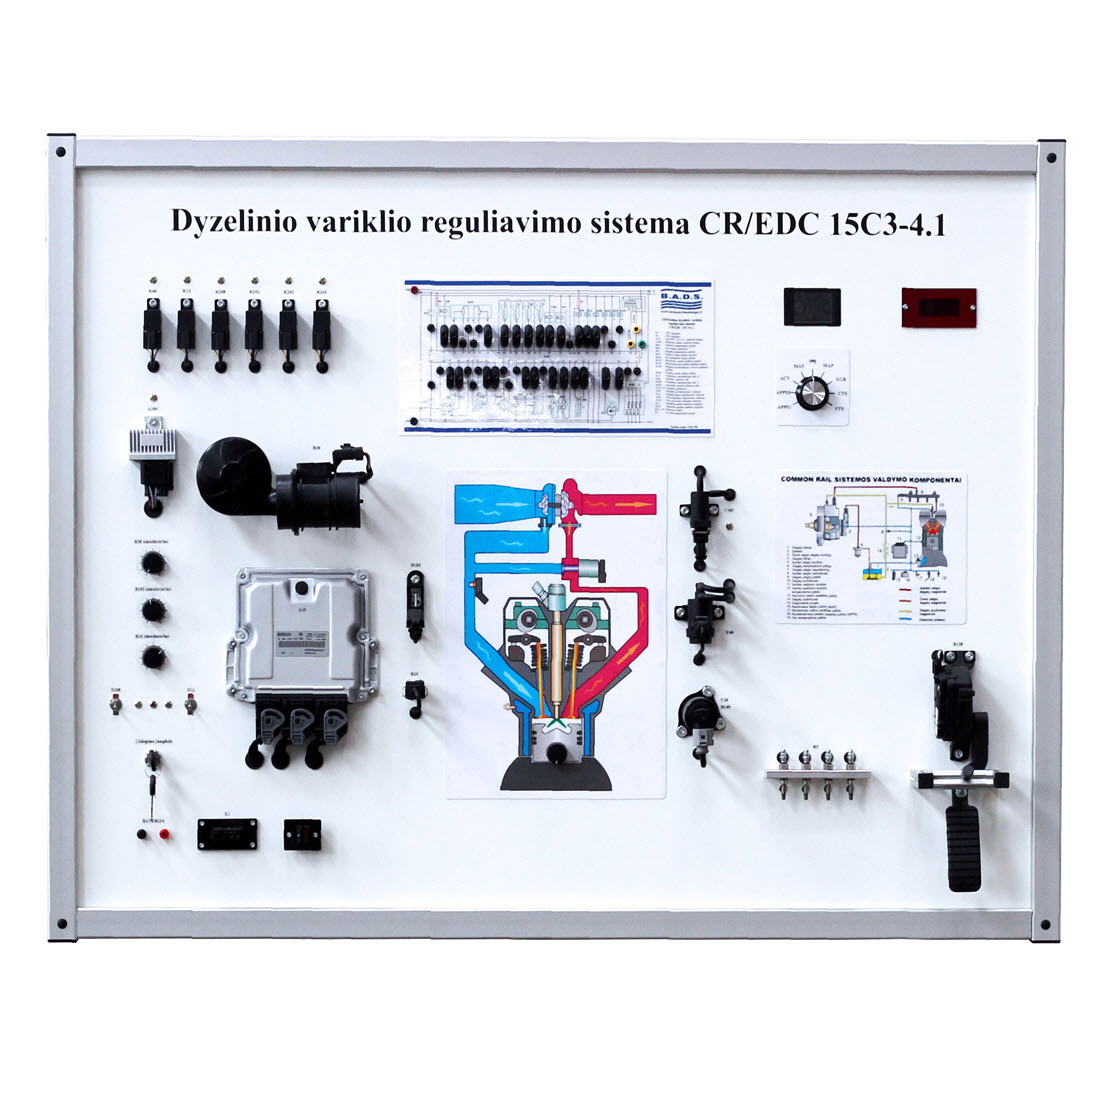 Cr Edc 15c3 41 Training Board Simulator For Sale Oxygen Sensor This Is Built From A Common Rail